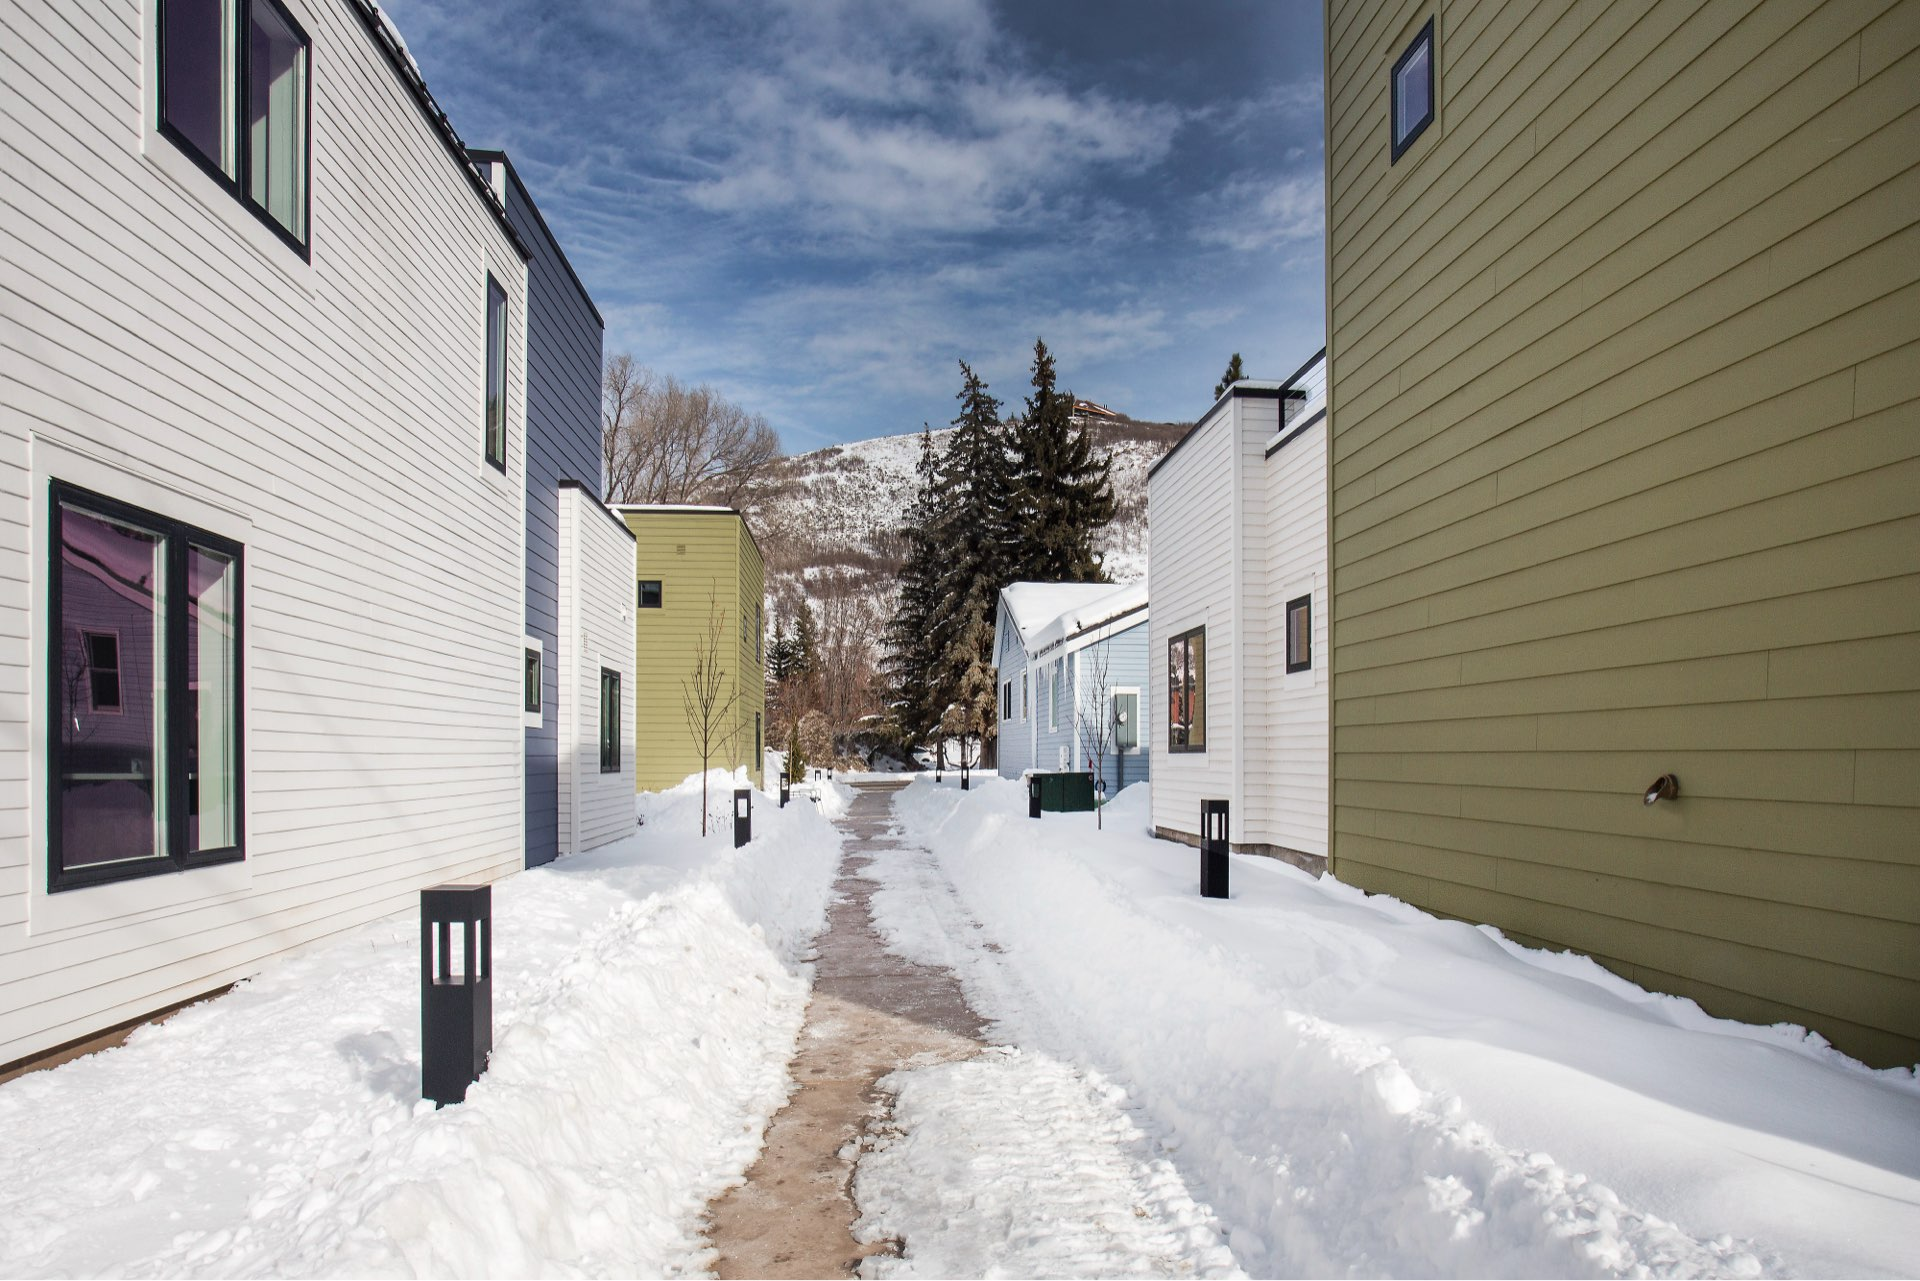 Walkway, Woodside Park Affordable Housing, architectural design by Elliott Workgroup